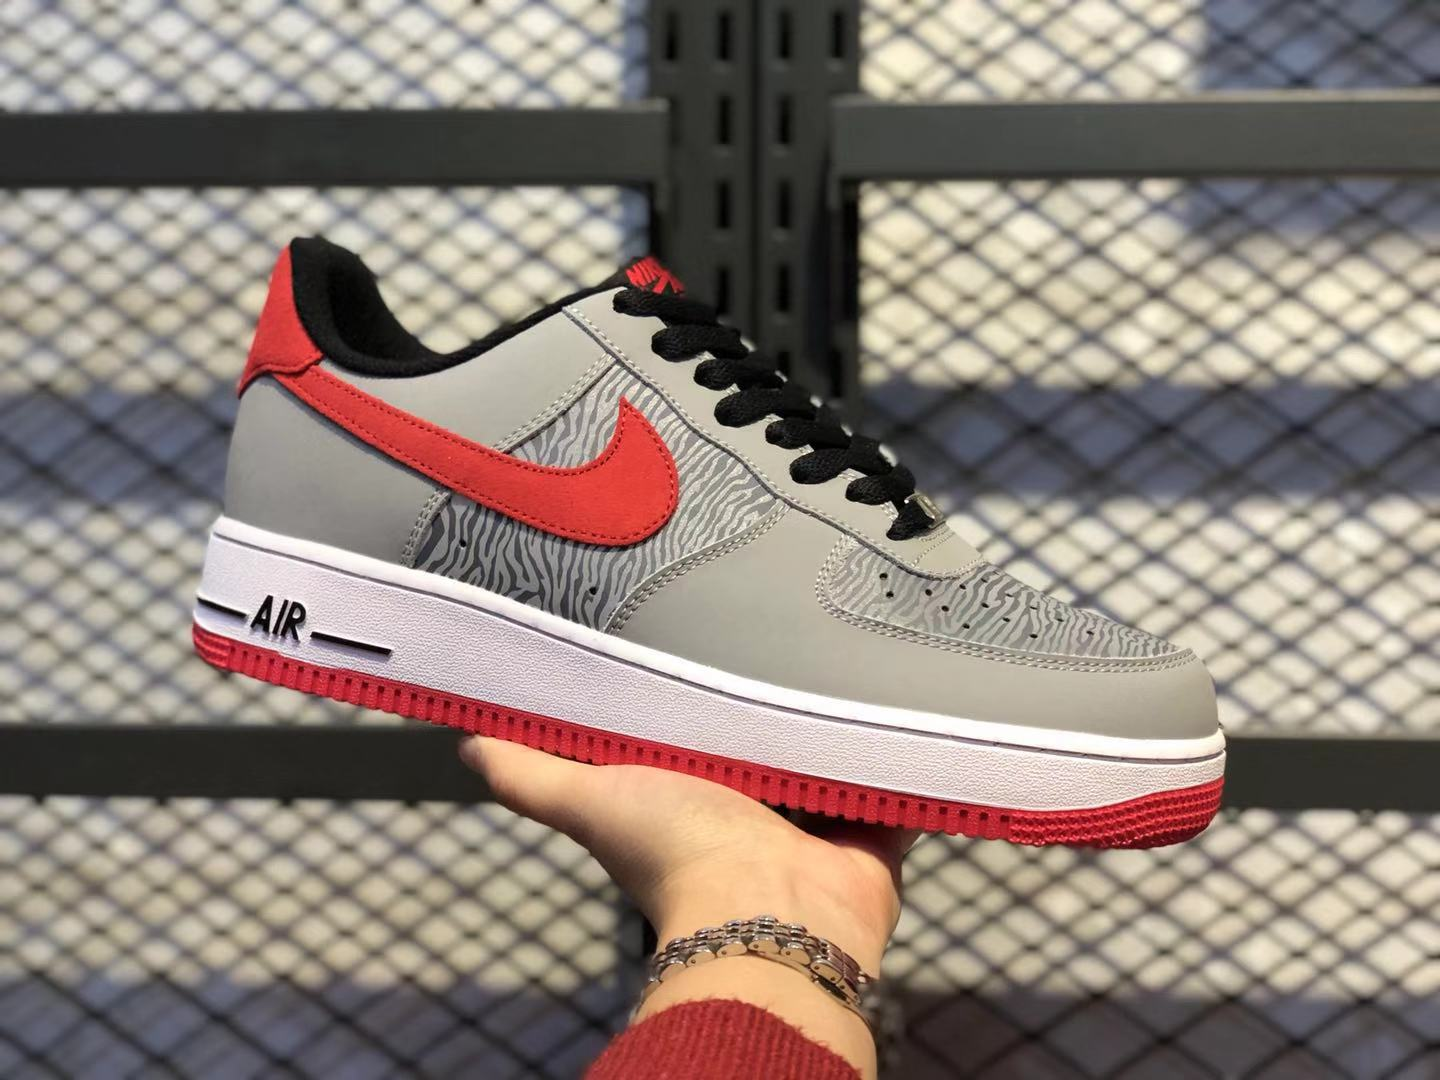 Discount Nike Air Force 1 Low Reflect Silver/University Red-Silver 488298-072